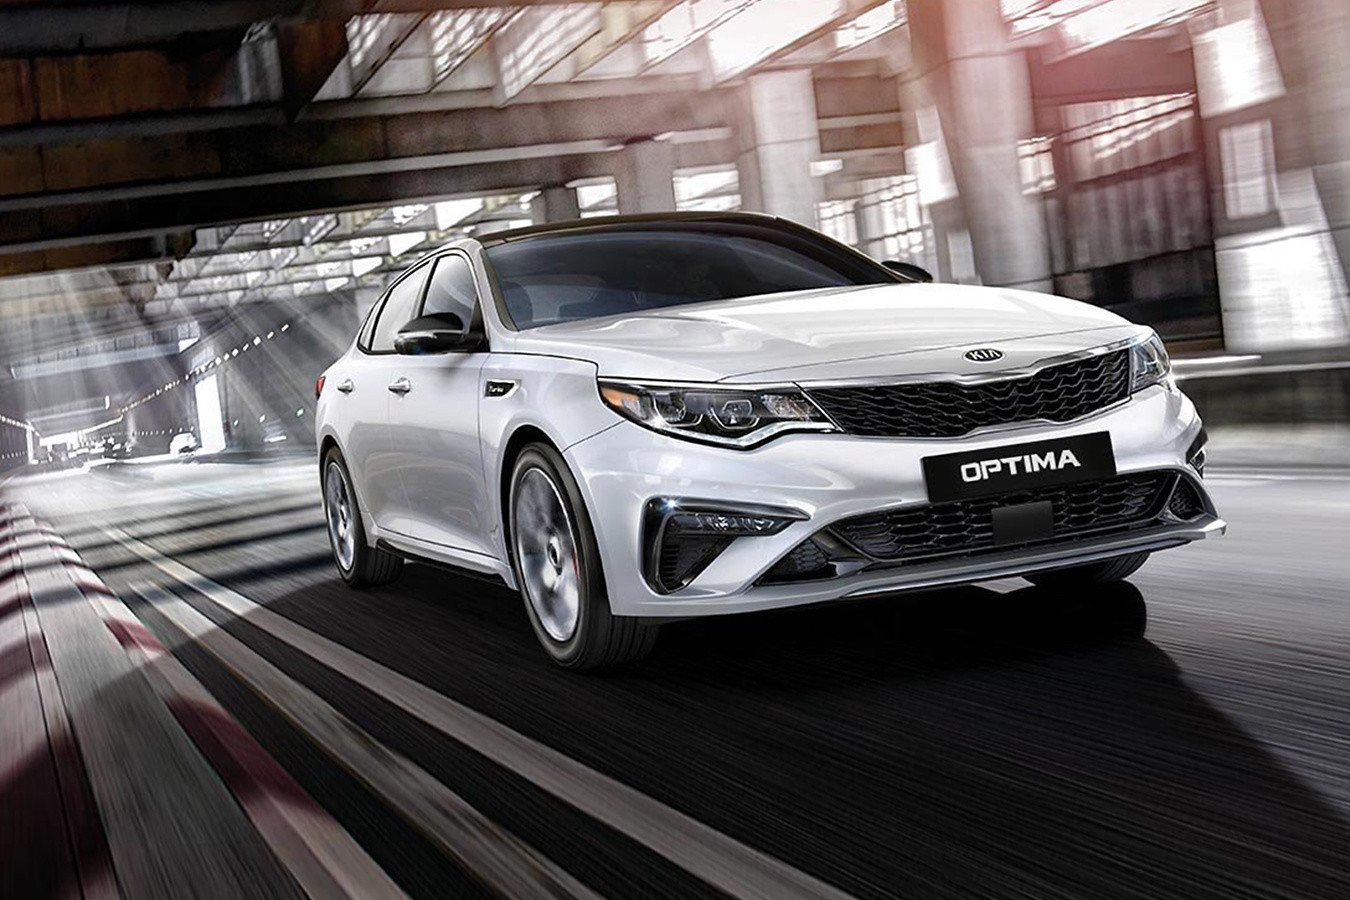 2020 Kia Optima Lease near Smithtown, NY